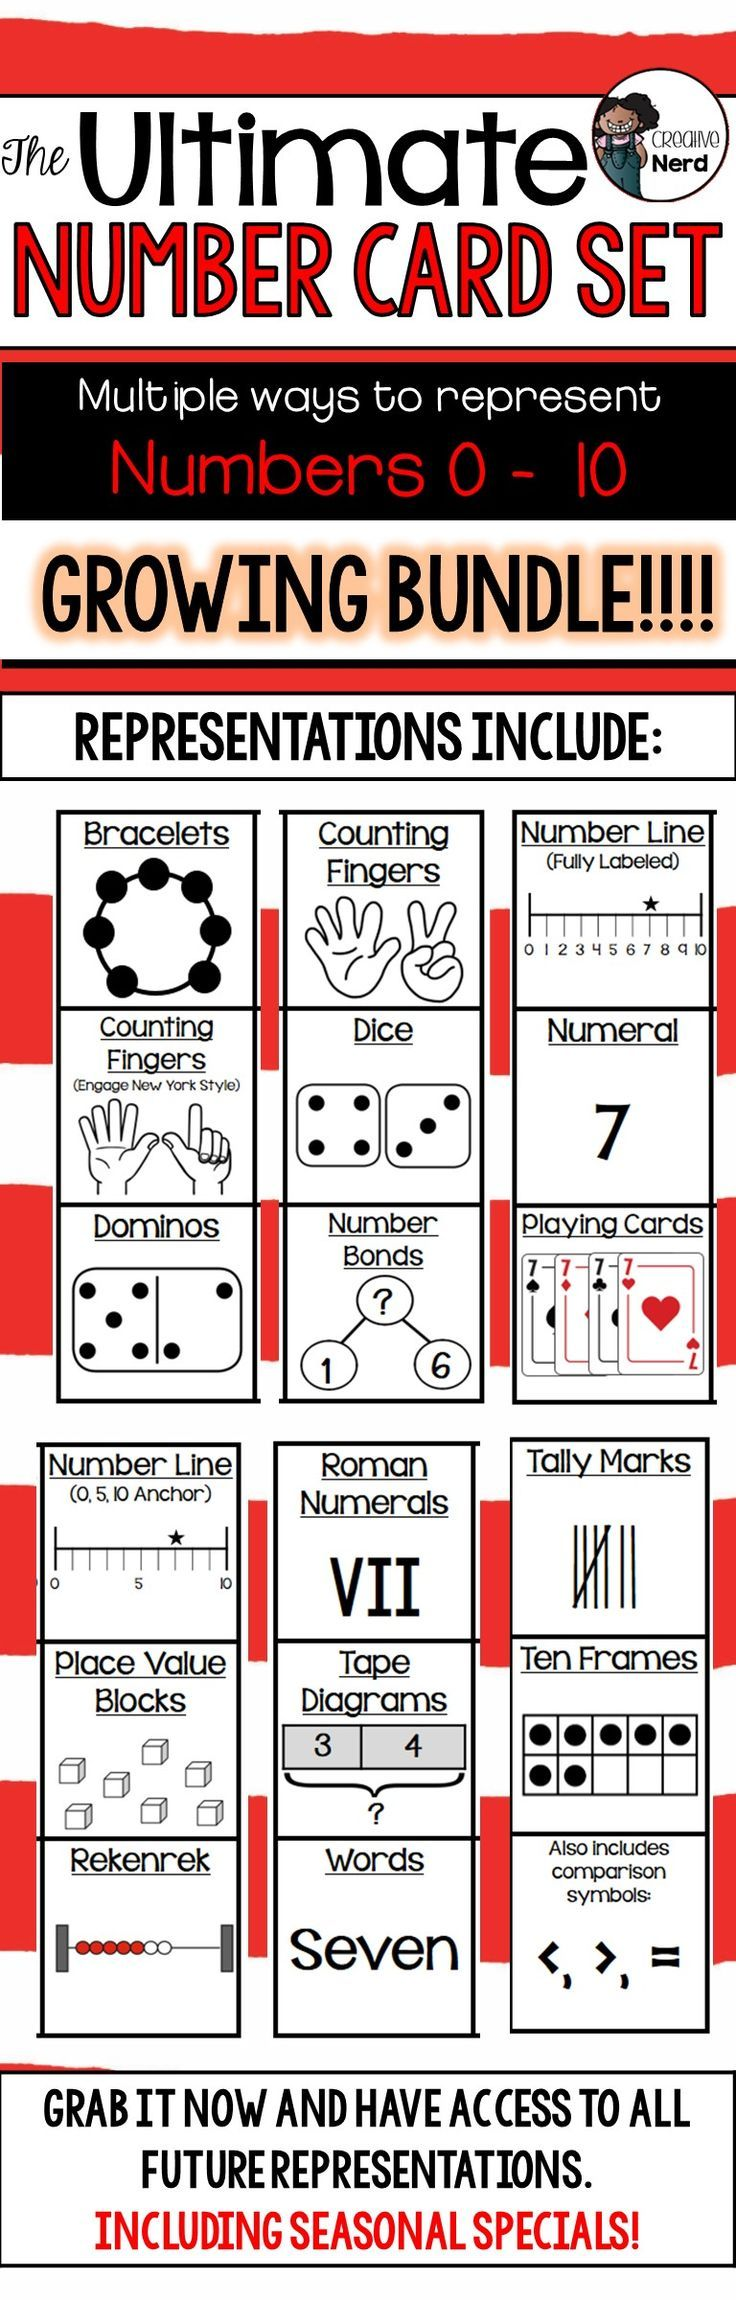 This resource provides the ultimate collection of representations for numbers 0 – 10! The cards in this set can be used for displaying numbers, morning meeting, subtilizing, number recognition, comparing numbers, composing and decomposing numbers, math centers, games, assessments…possibilities are endless! And what's even better…this is a GROWING BUNDLE! Act now and get access to all future representations, without the price increase!